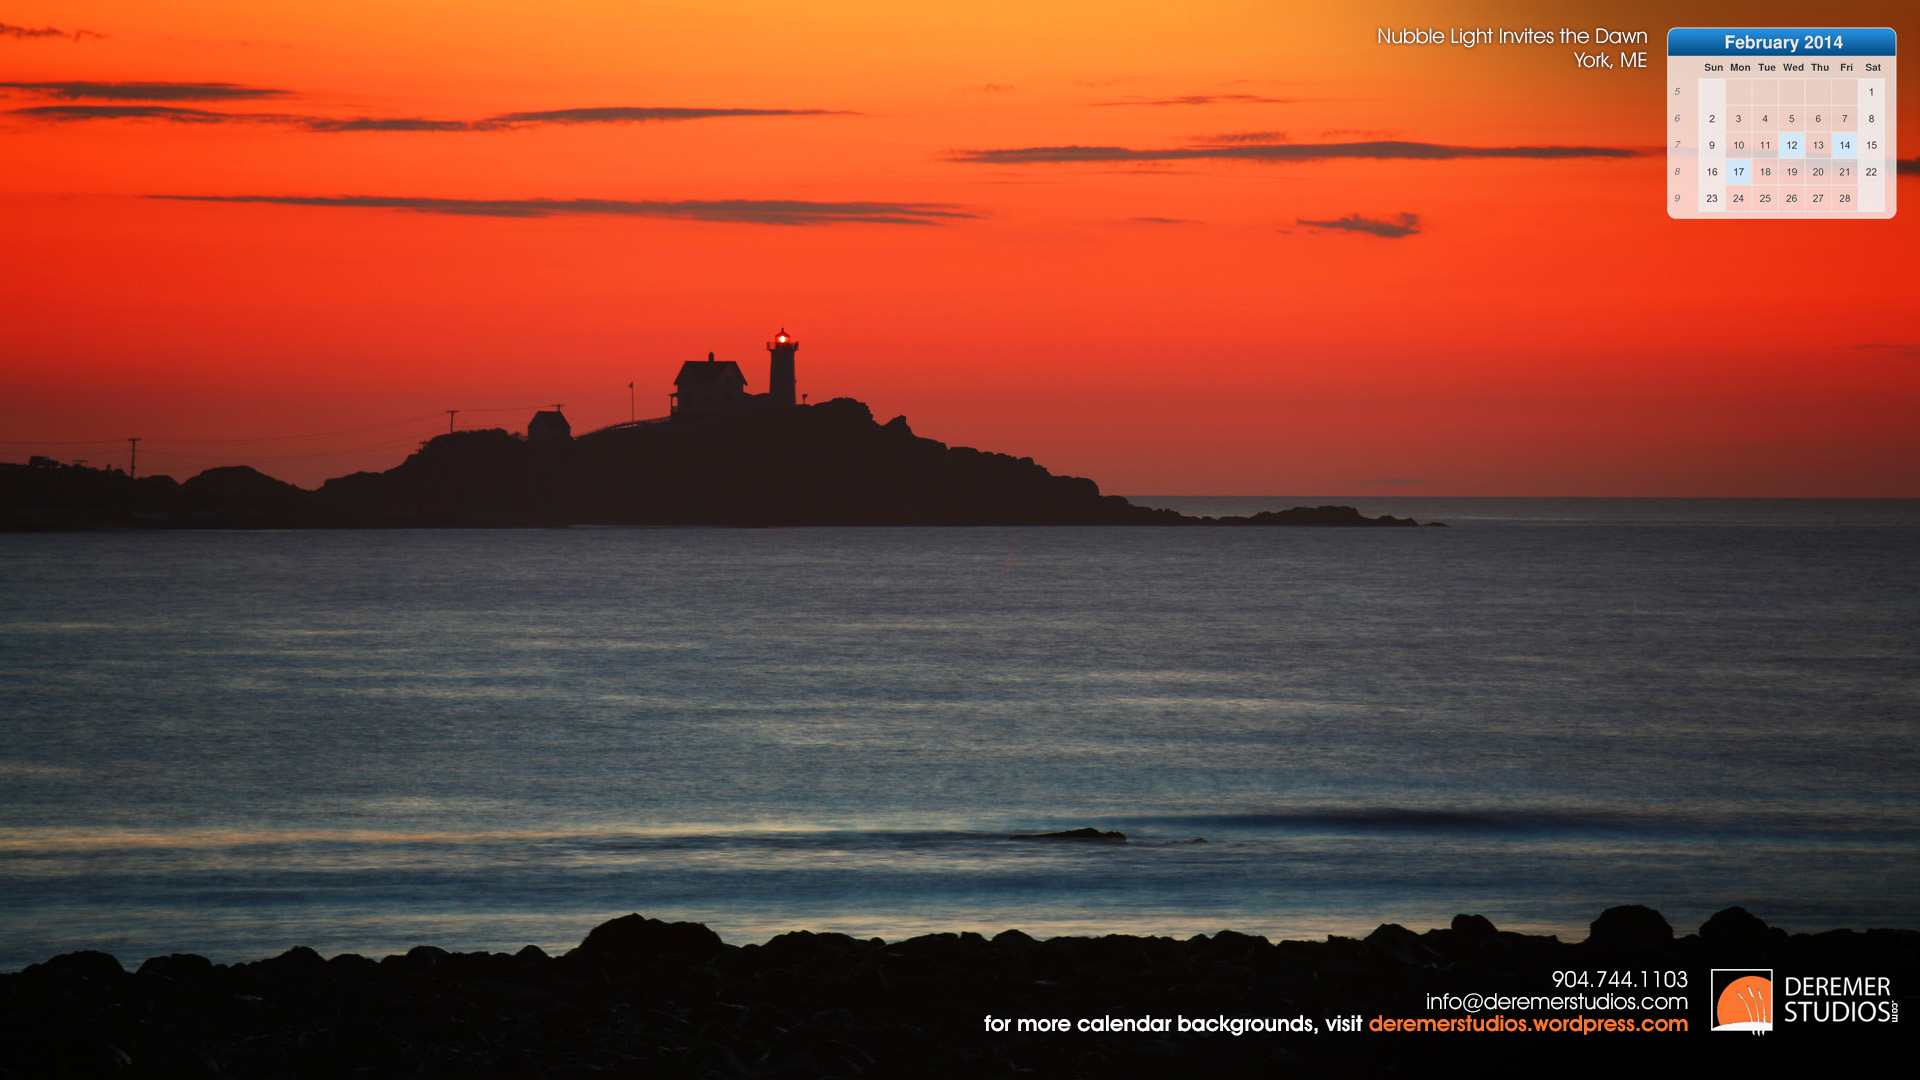 2014 02 February - Nubble Light at Dawn Calendar Wallpaper